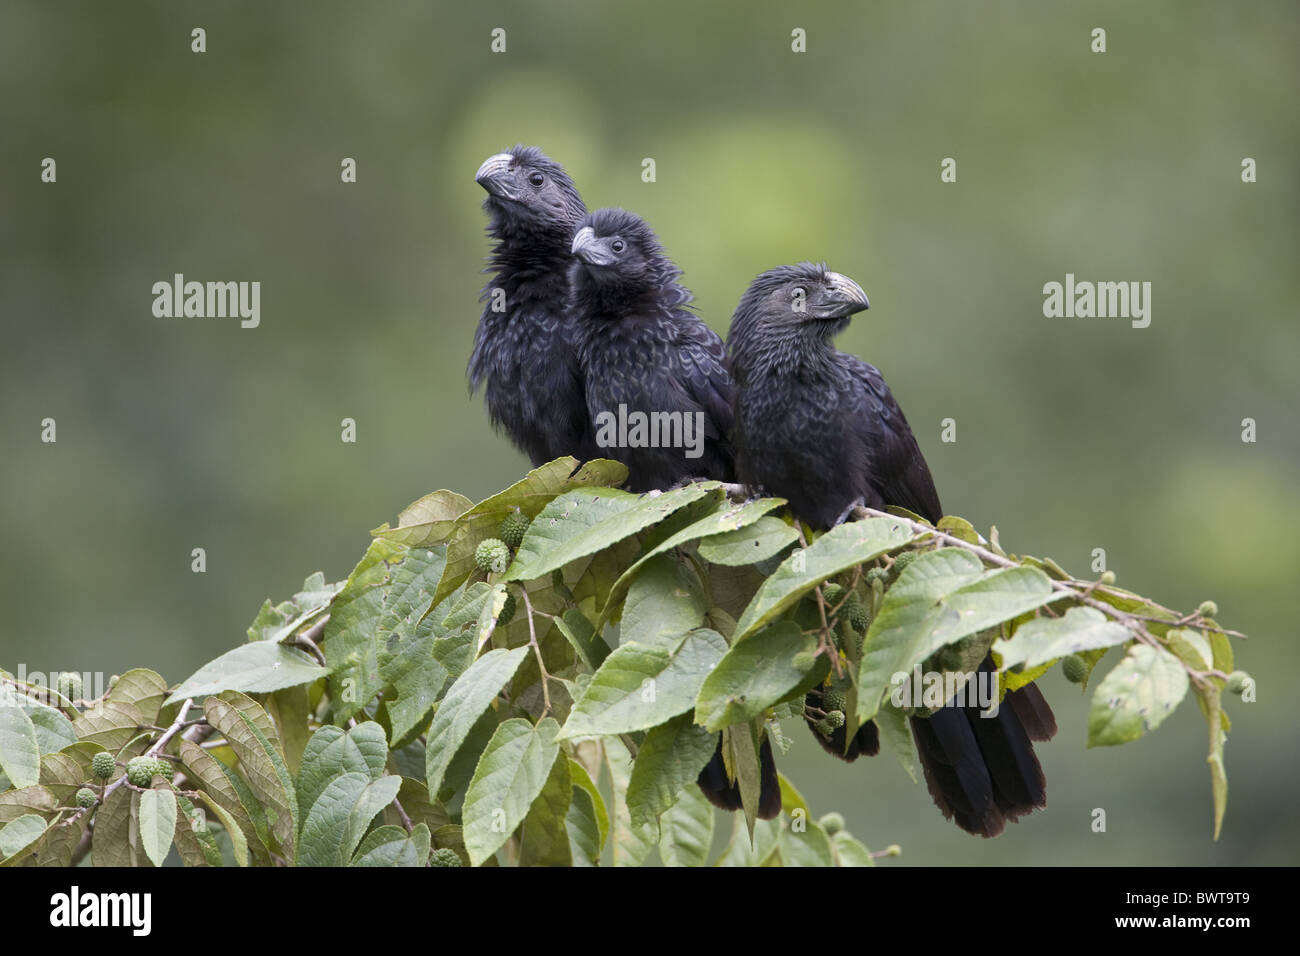 Groove-billed Ani (Crotophaga sulcirostris) three adults, perched on branch, Cayo District, Belize - Stock Image